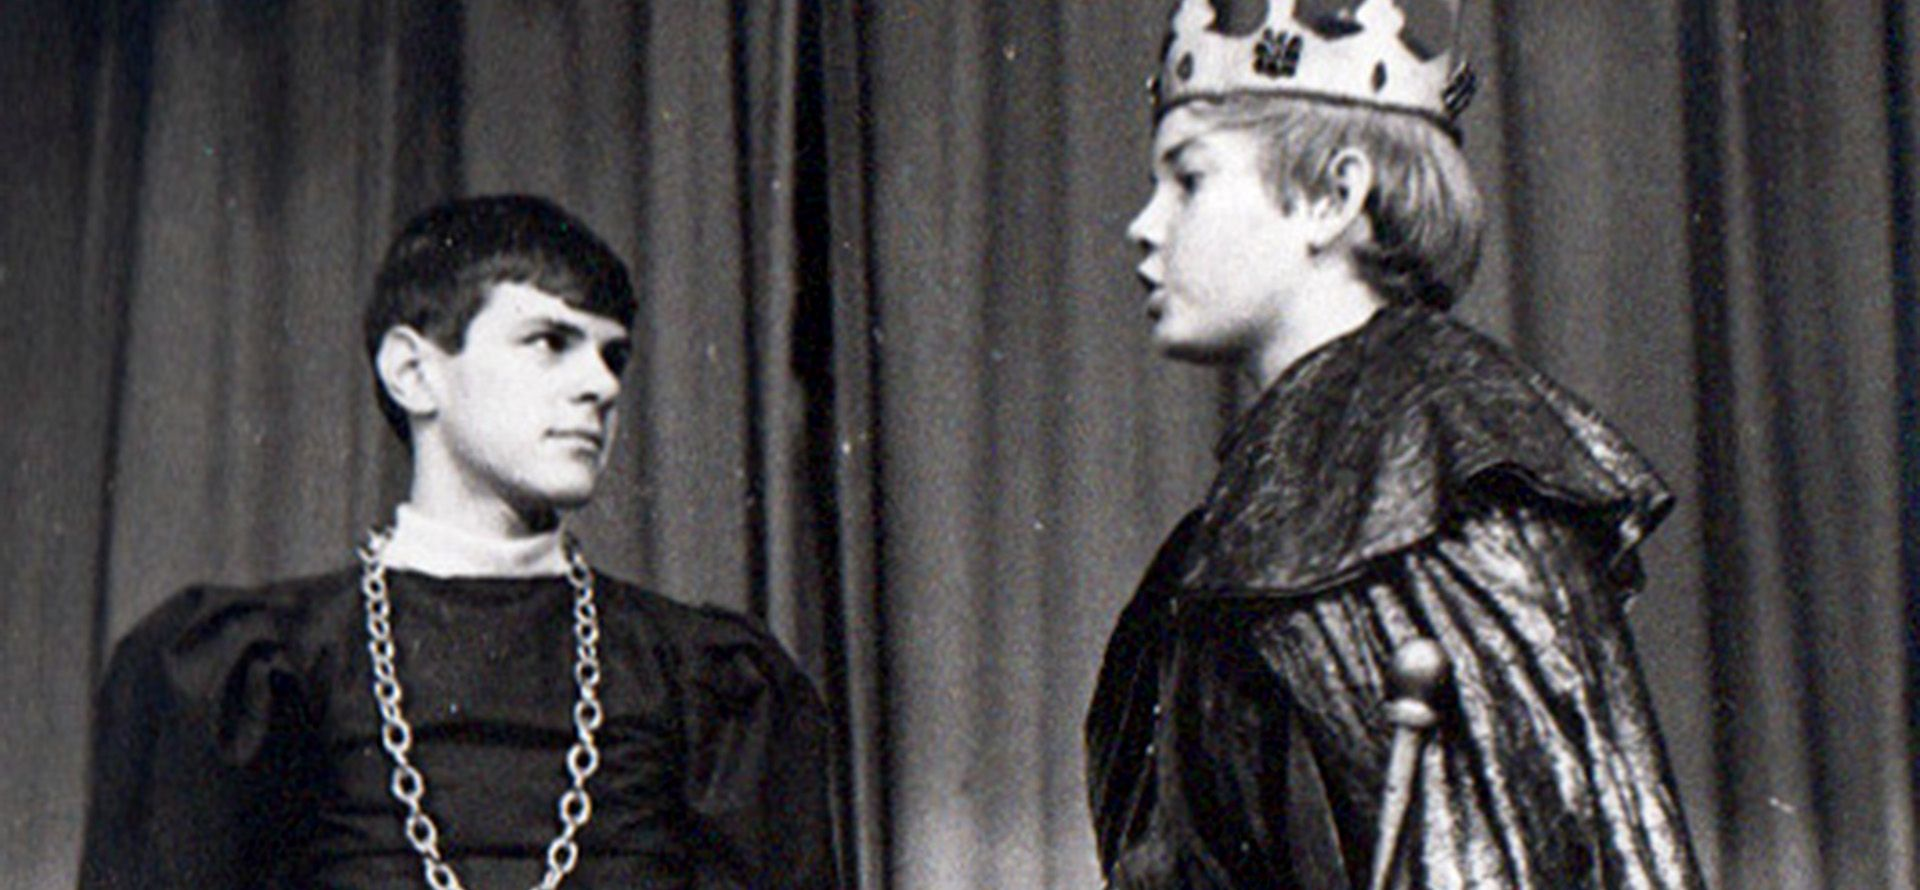 1965, King Henry IV Part I